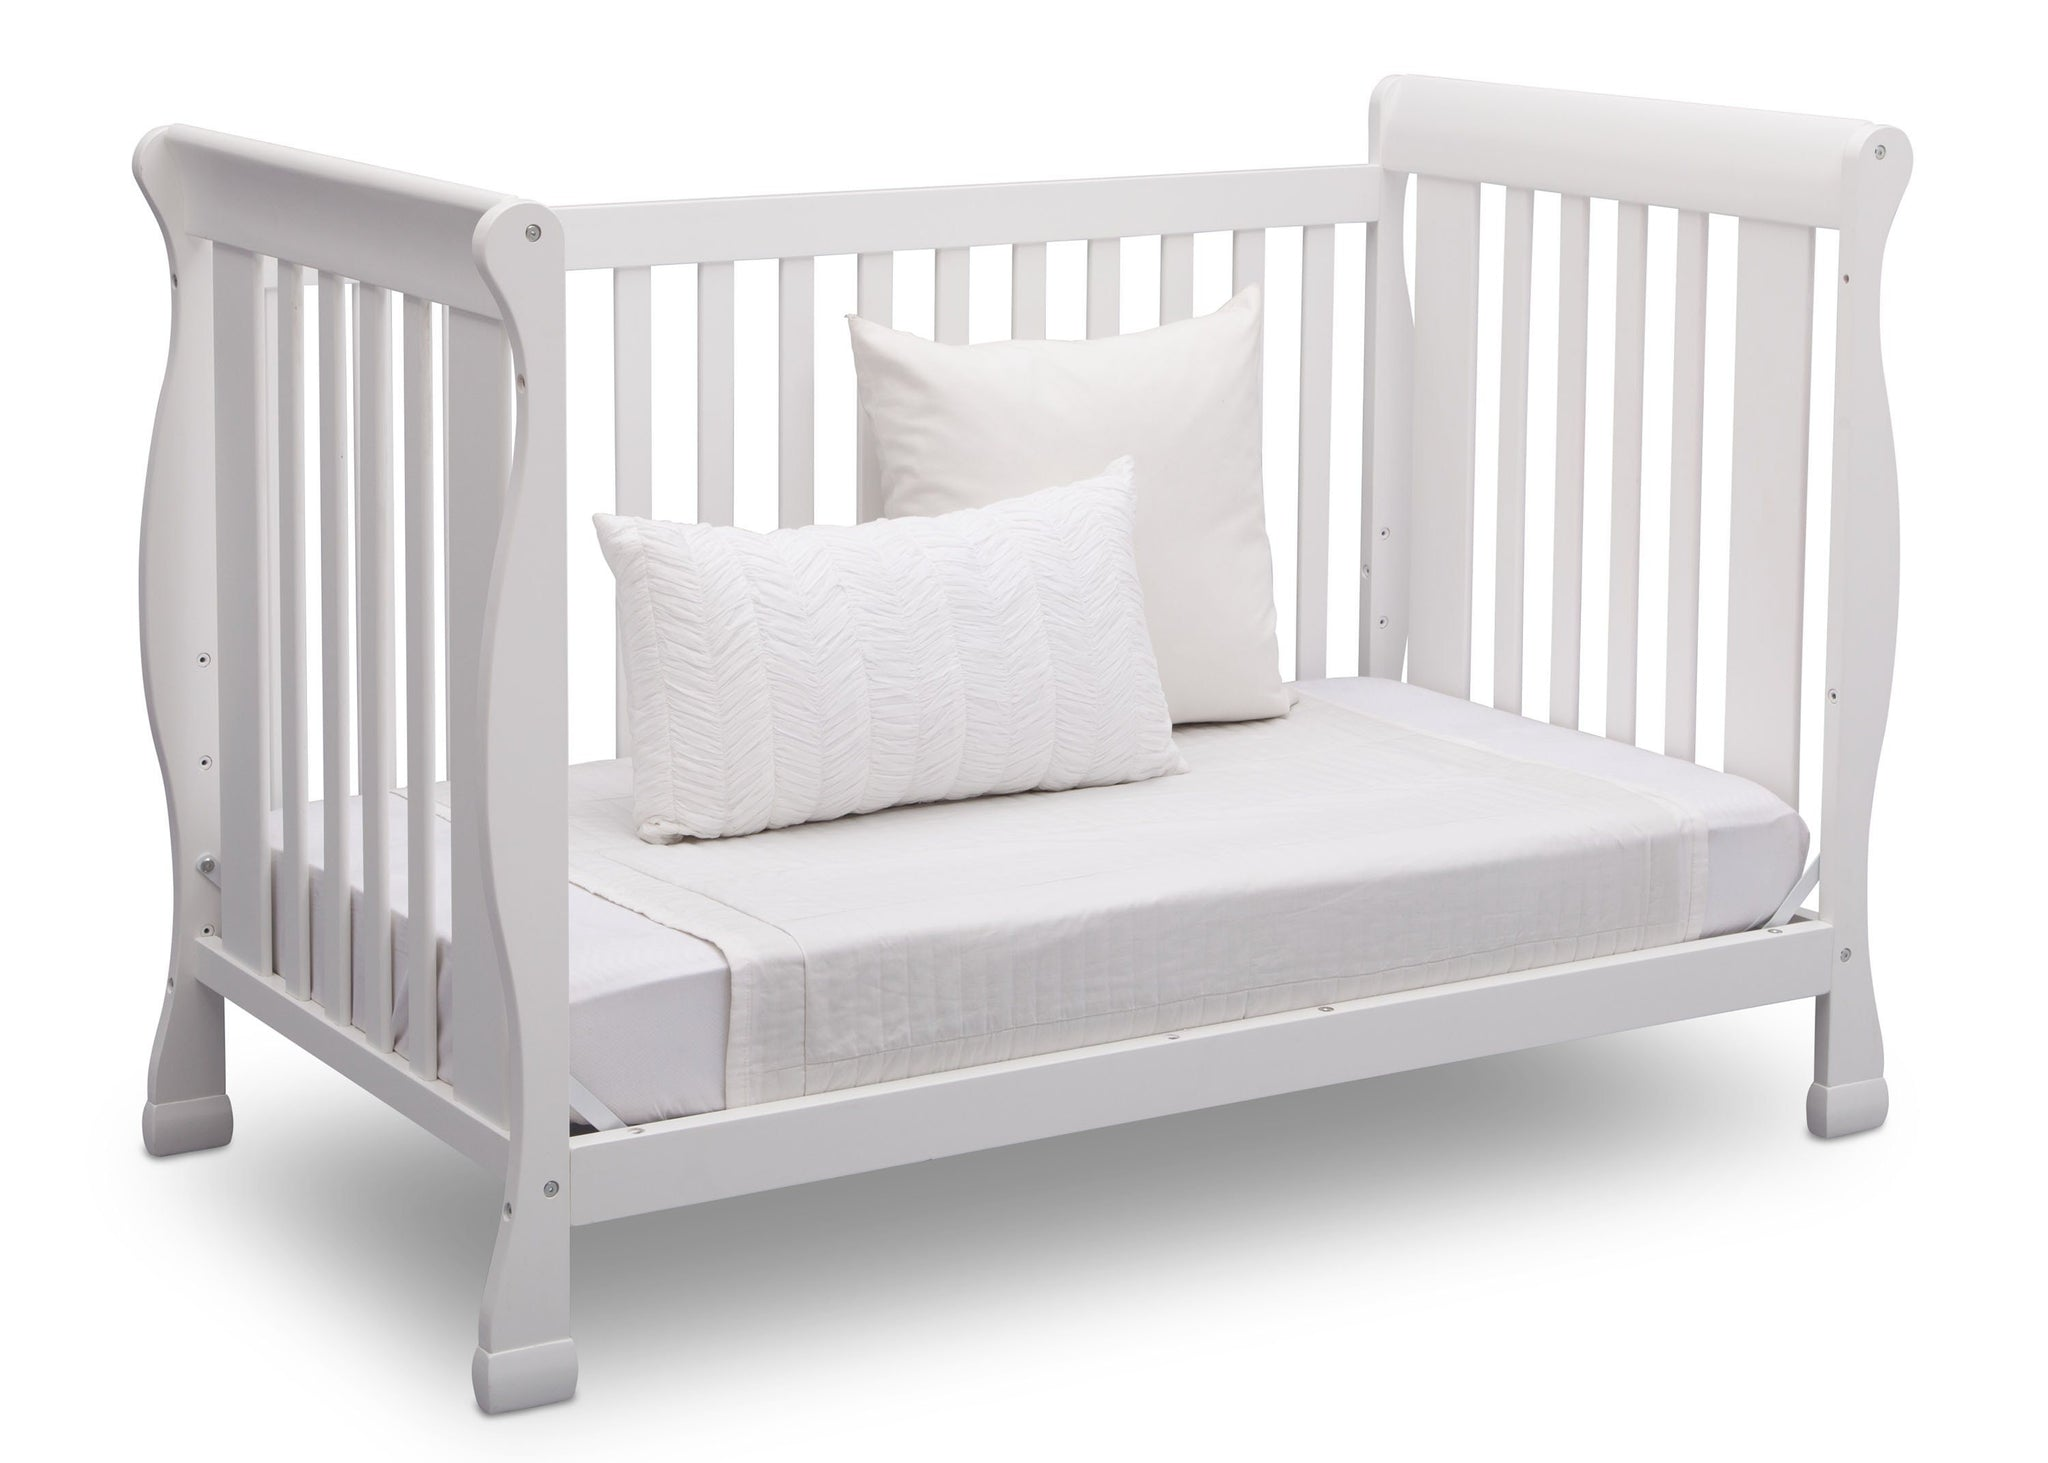 Delta Children Bianca (130) Riverside 4-in-1 Crib, angled conversion to daybed, a5a